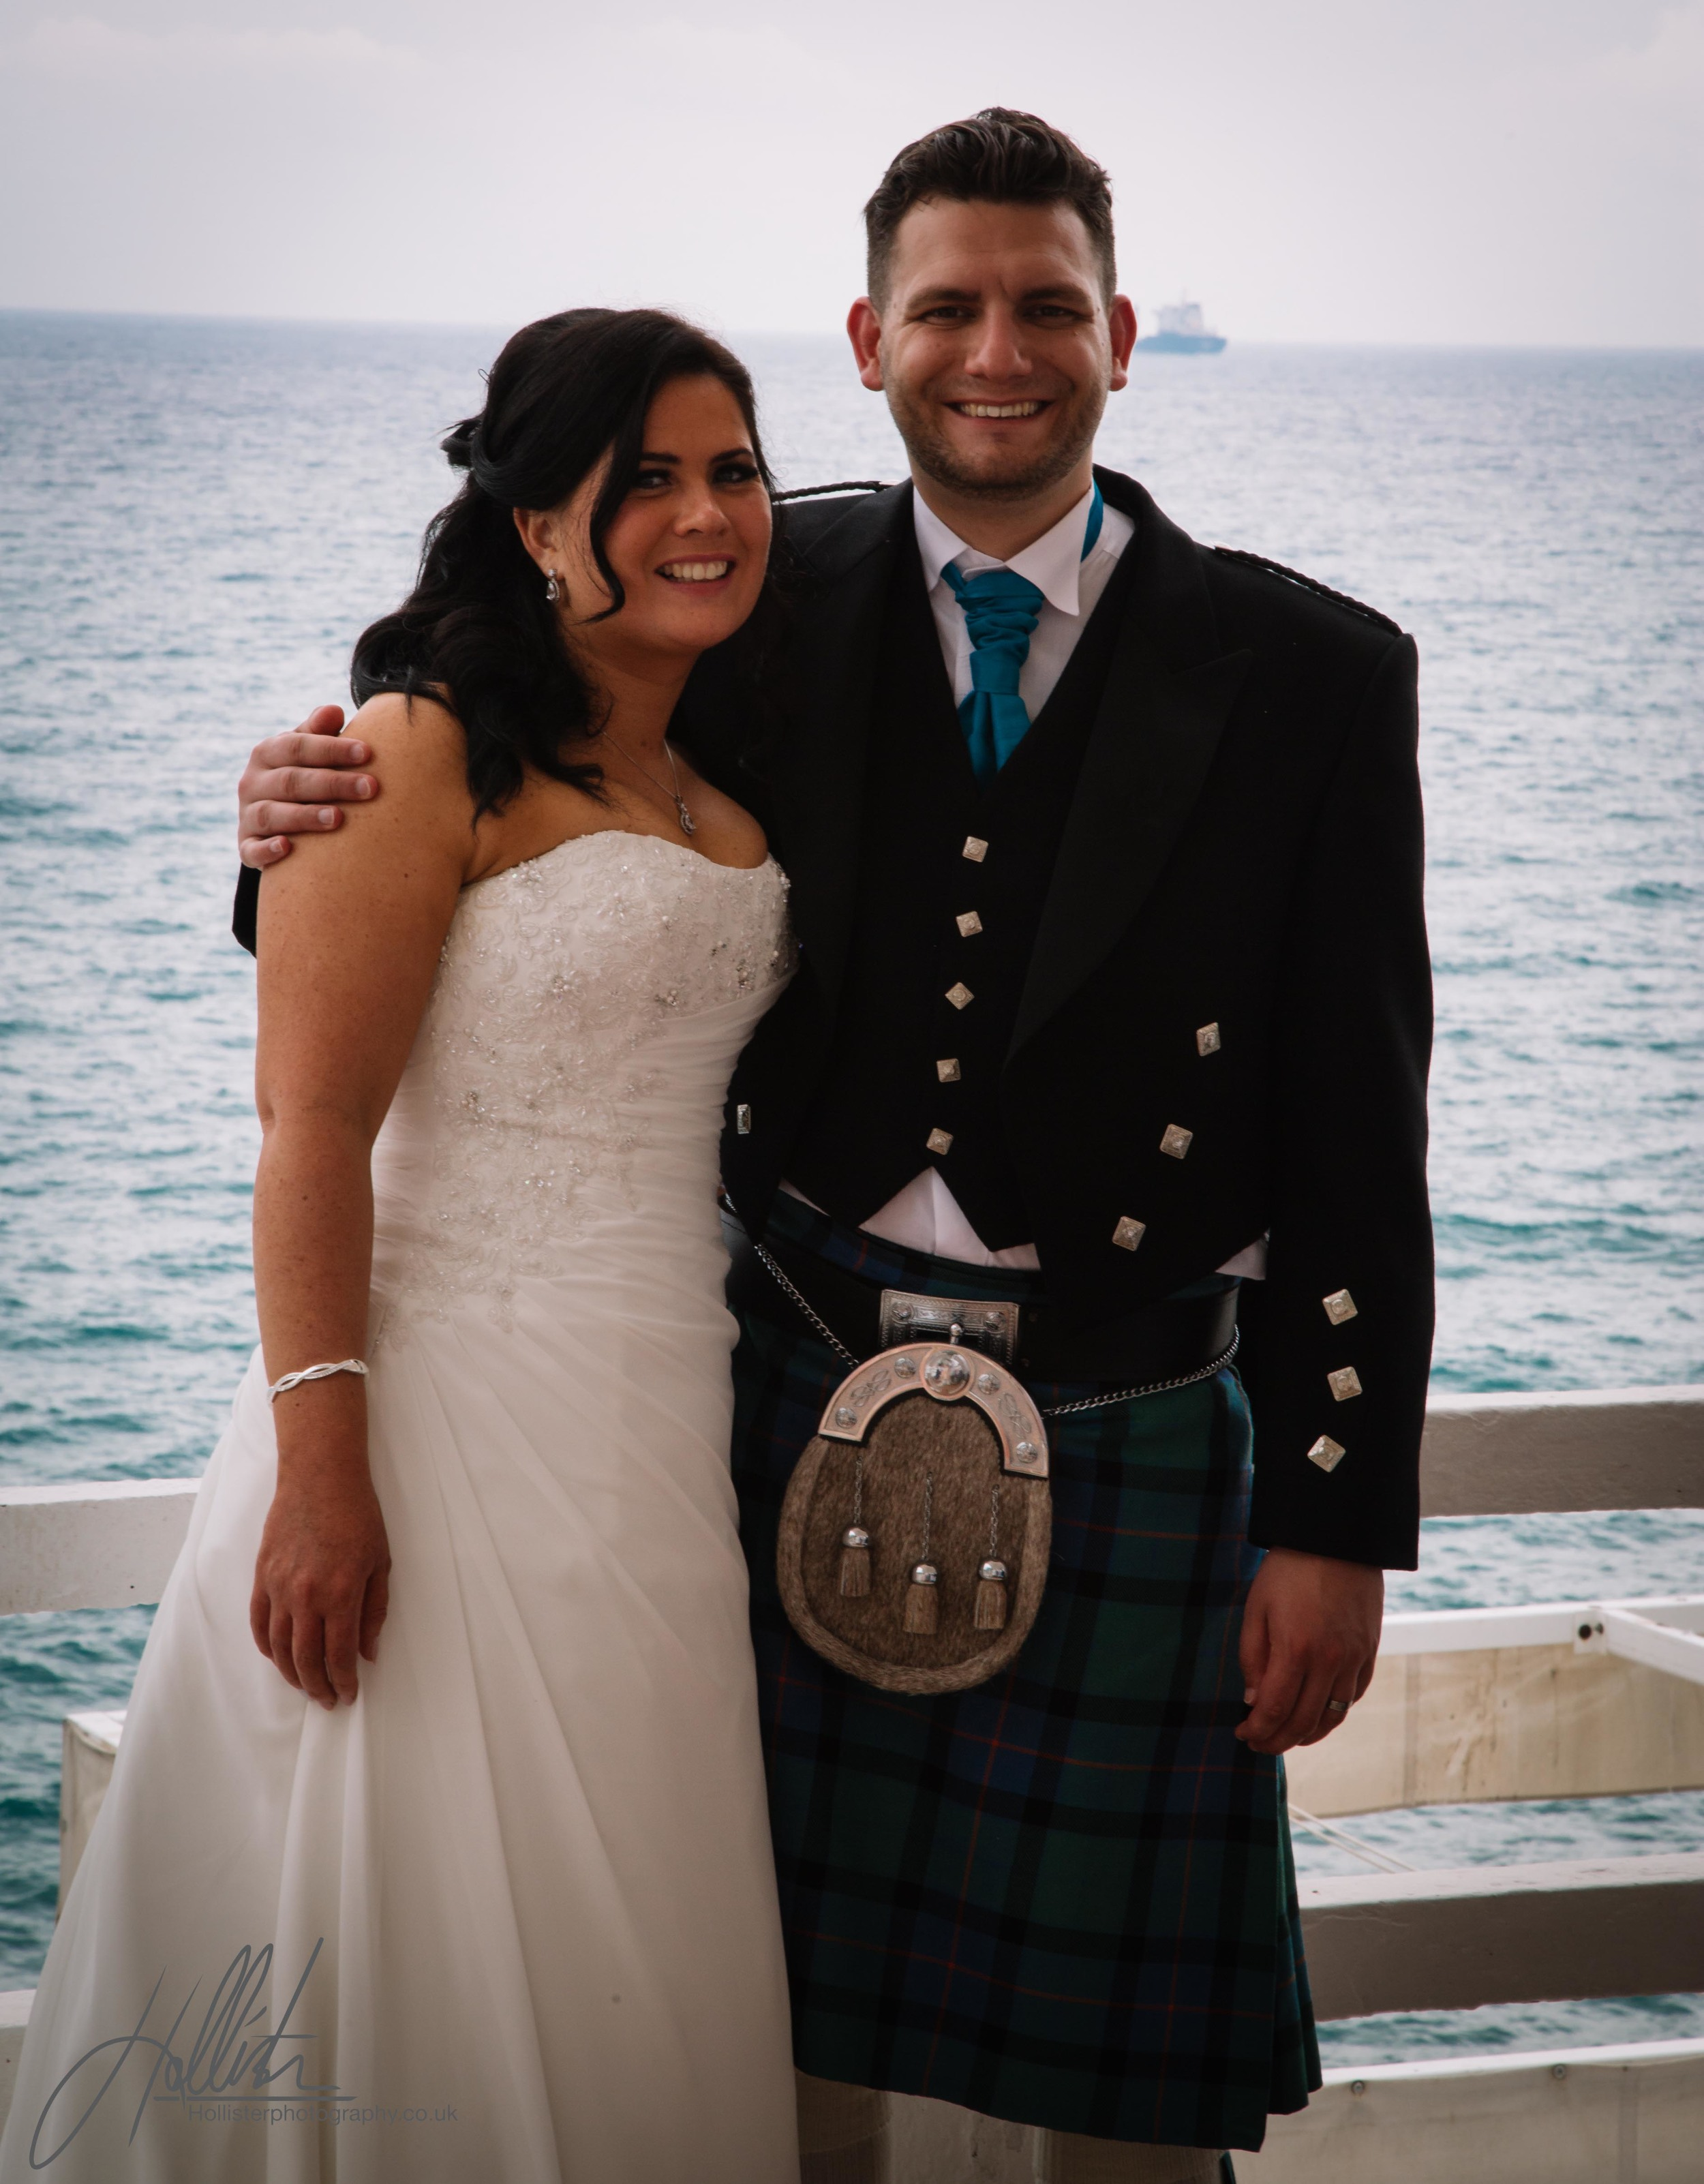 Stu and Firons Gibraltan Wedding june 6th 2015  WATERMARKED-61.jpg